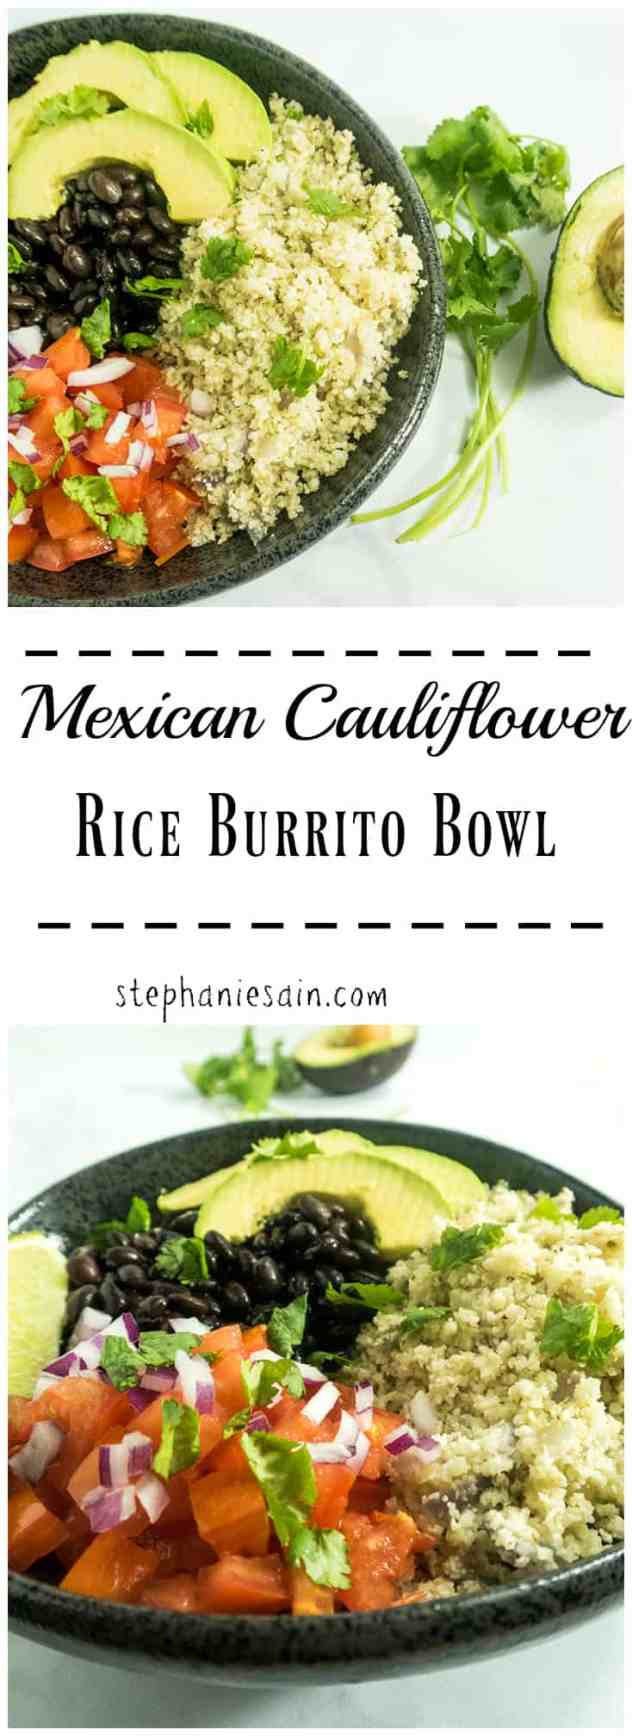 Mexican Cauliflower Rice Burrito Bowl is a healthy, tasty, one bowl dinner or lunch. Mexican flavored cauliflower rice topped with your favorites. Vegan & Gluten Free.